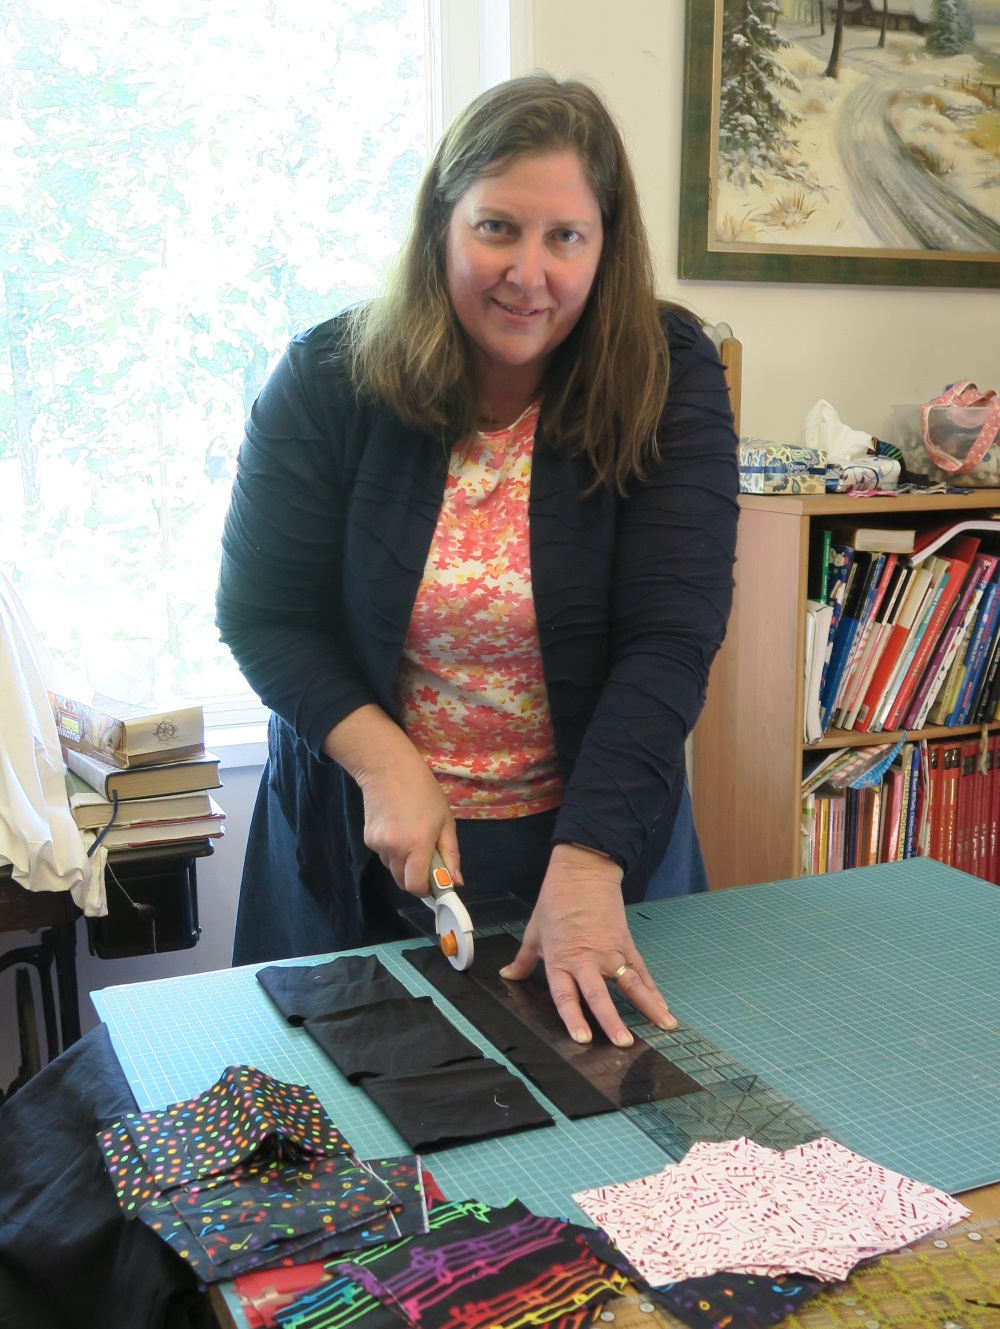 Rachael cutting black fabric on top of quilting measuring and cutting board. A painting is in the background along with a bookshelf full of quilting books. Cut musical fabric is in the foreground